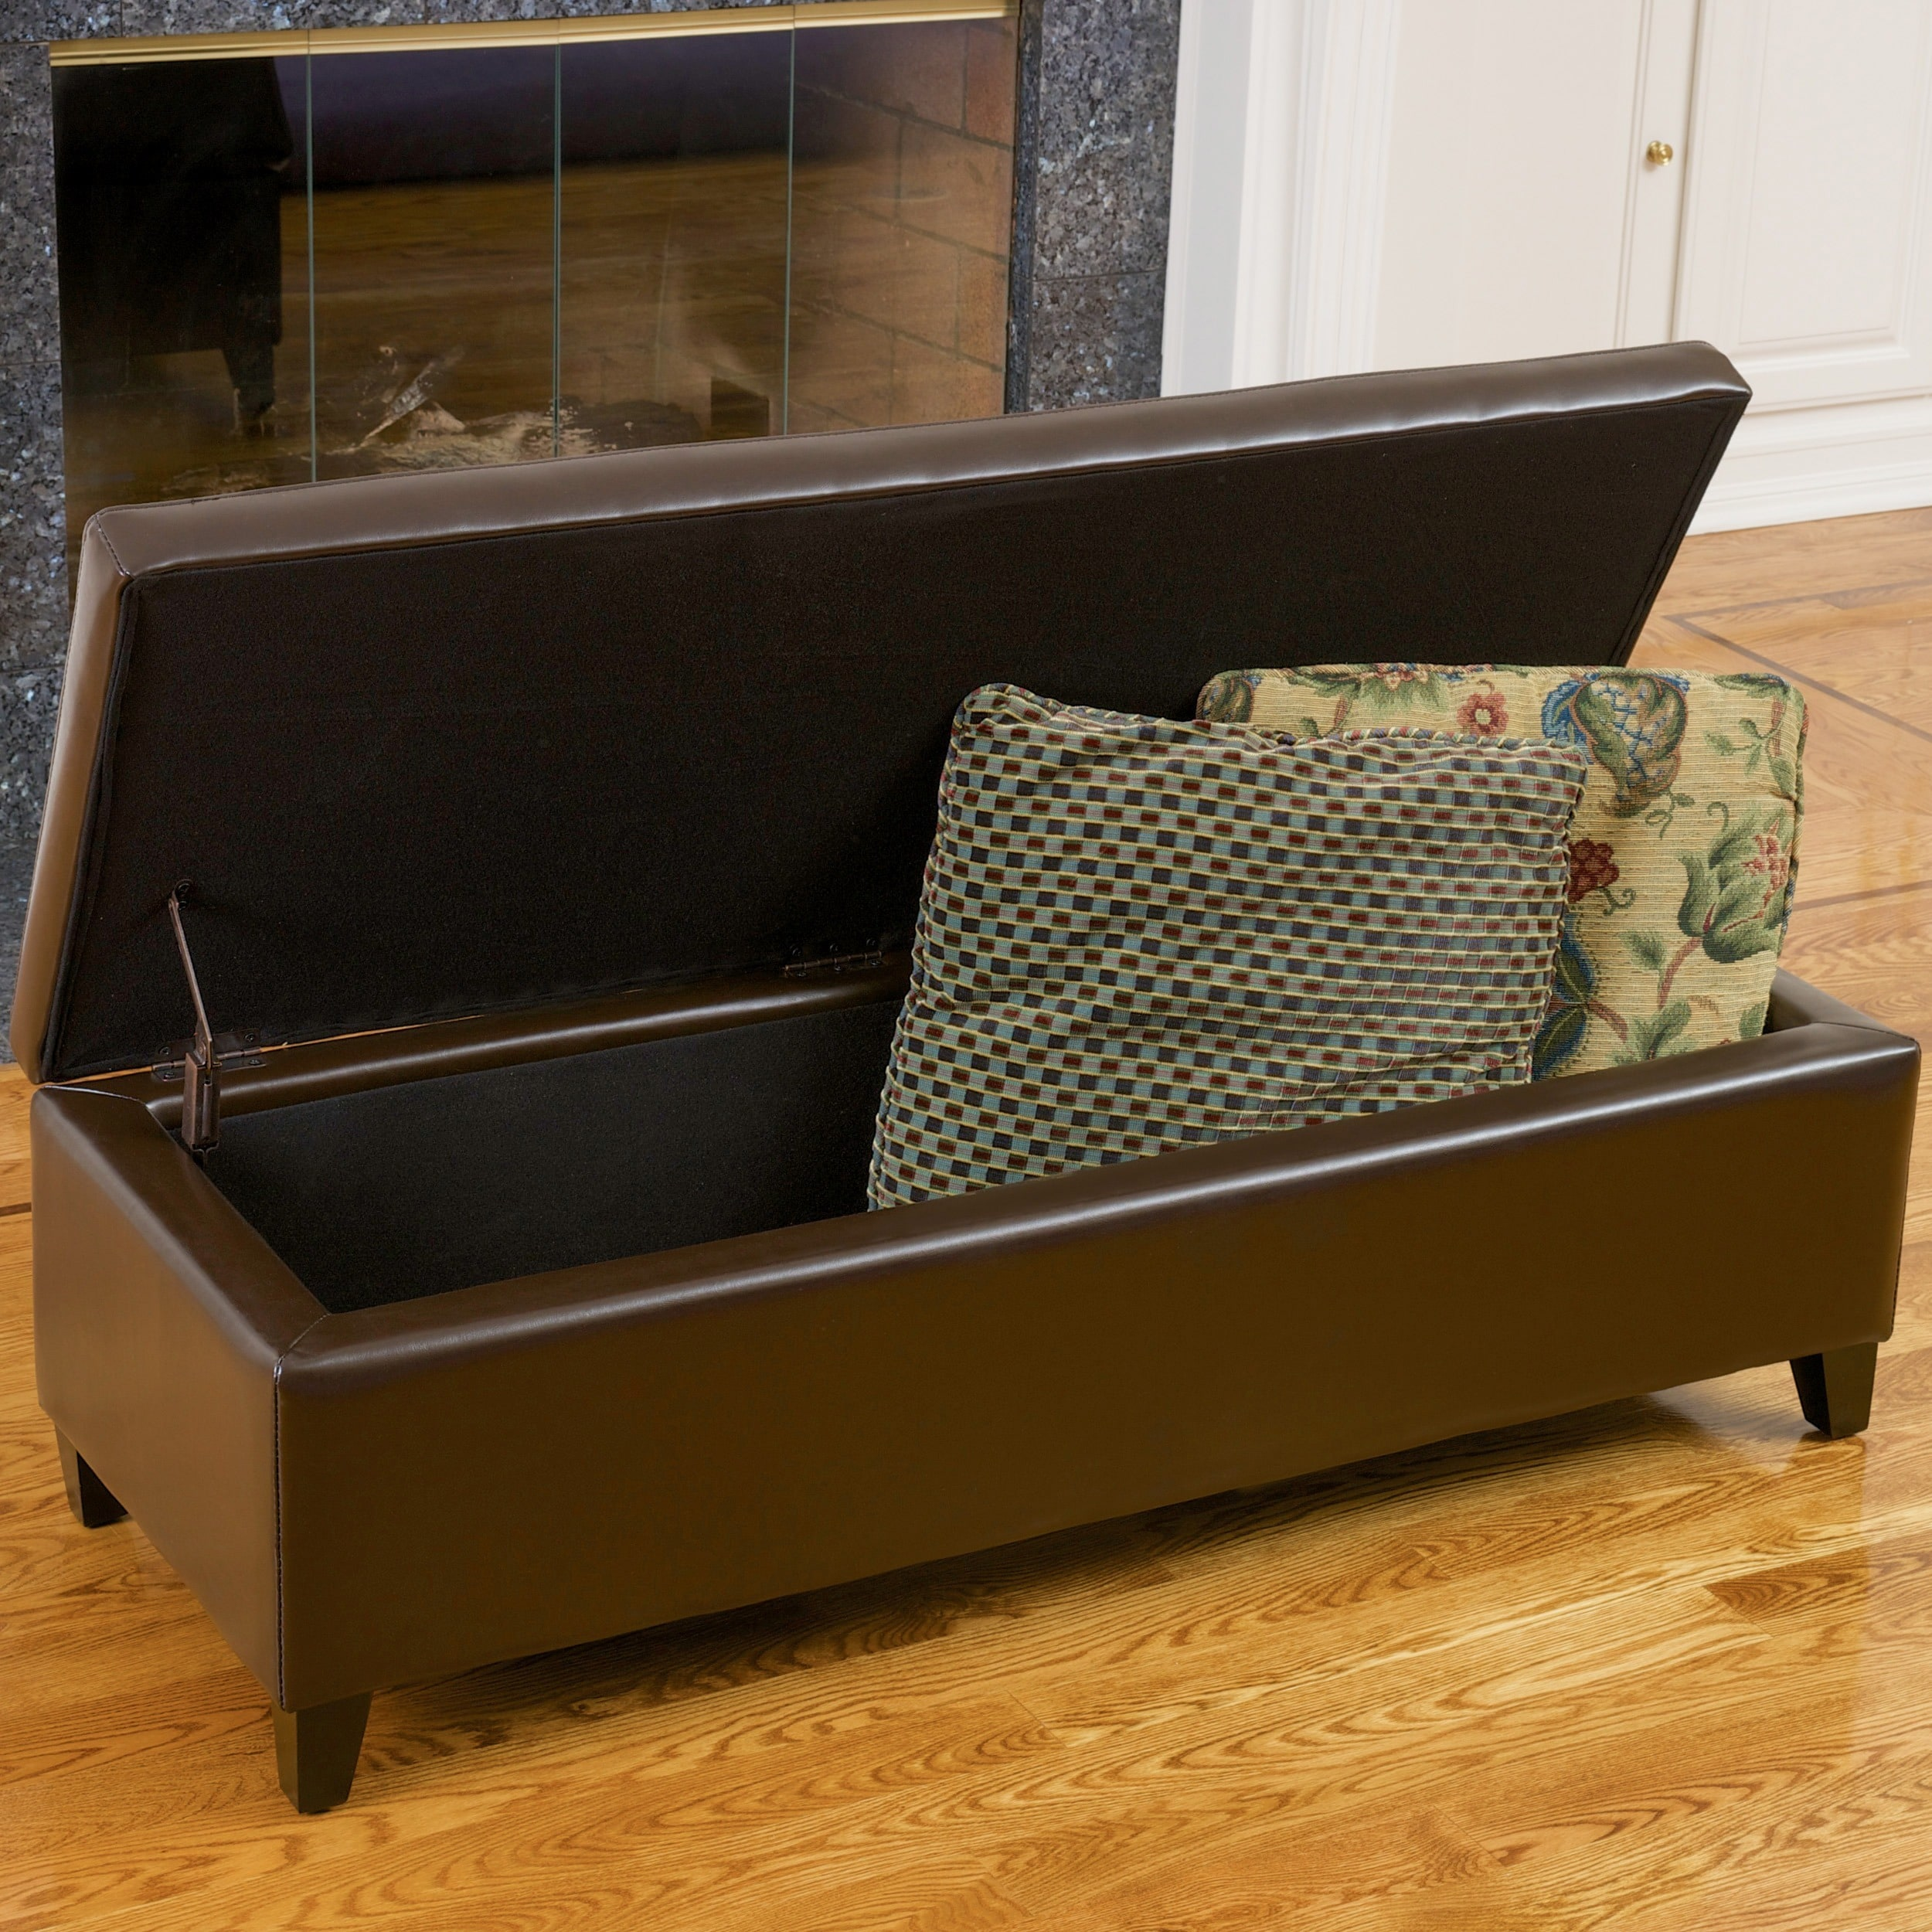 York Bonded Leather Brown Storage Ottoman Bench by Christopher Knight Home (York Bonded Leather Brown Storage Ottoman Bench)